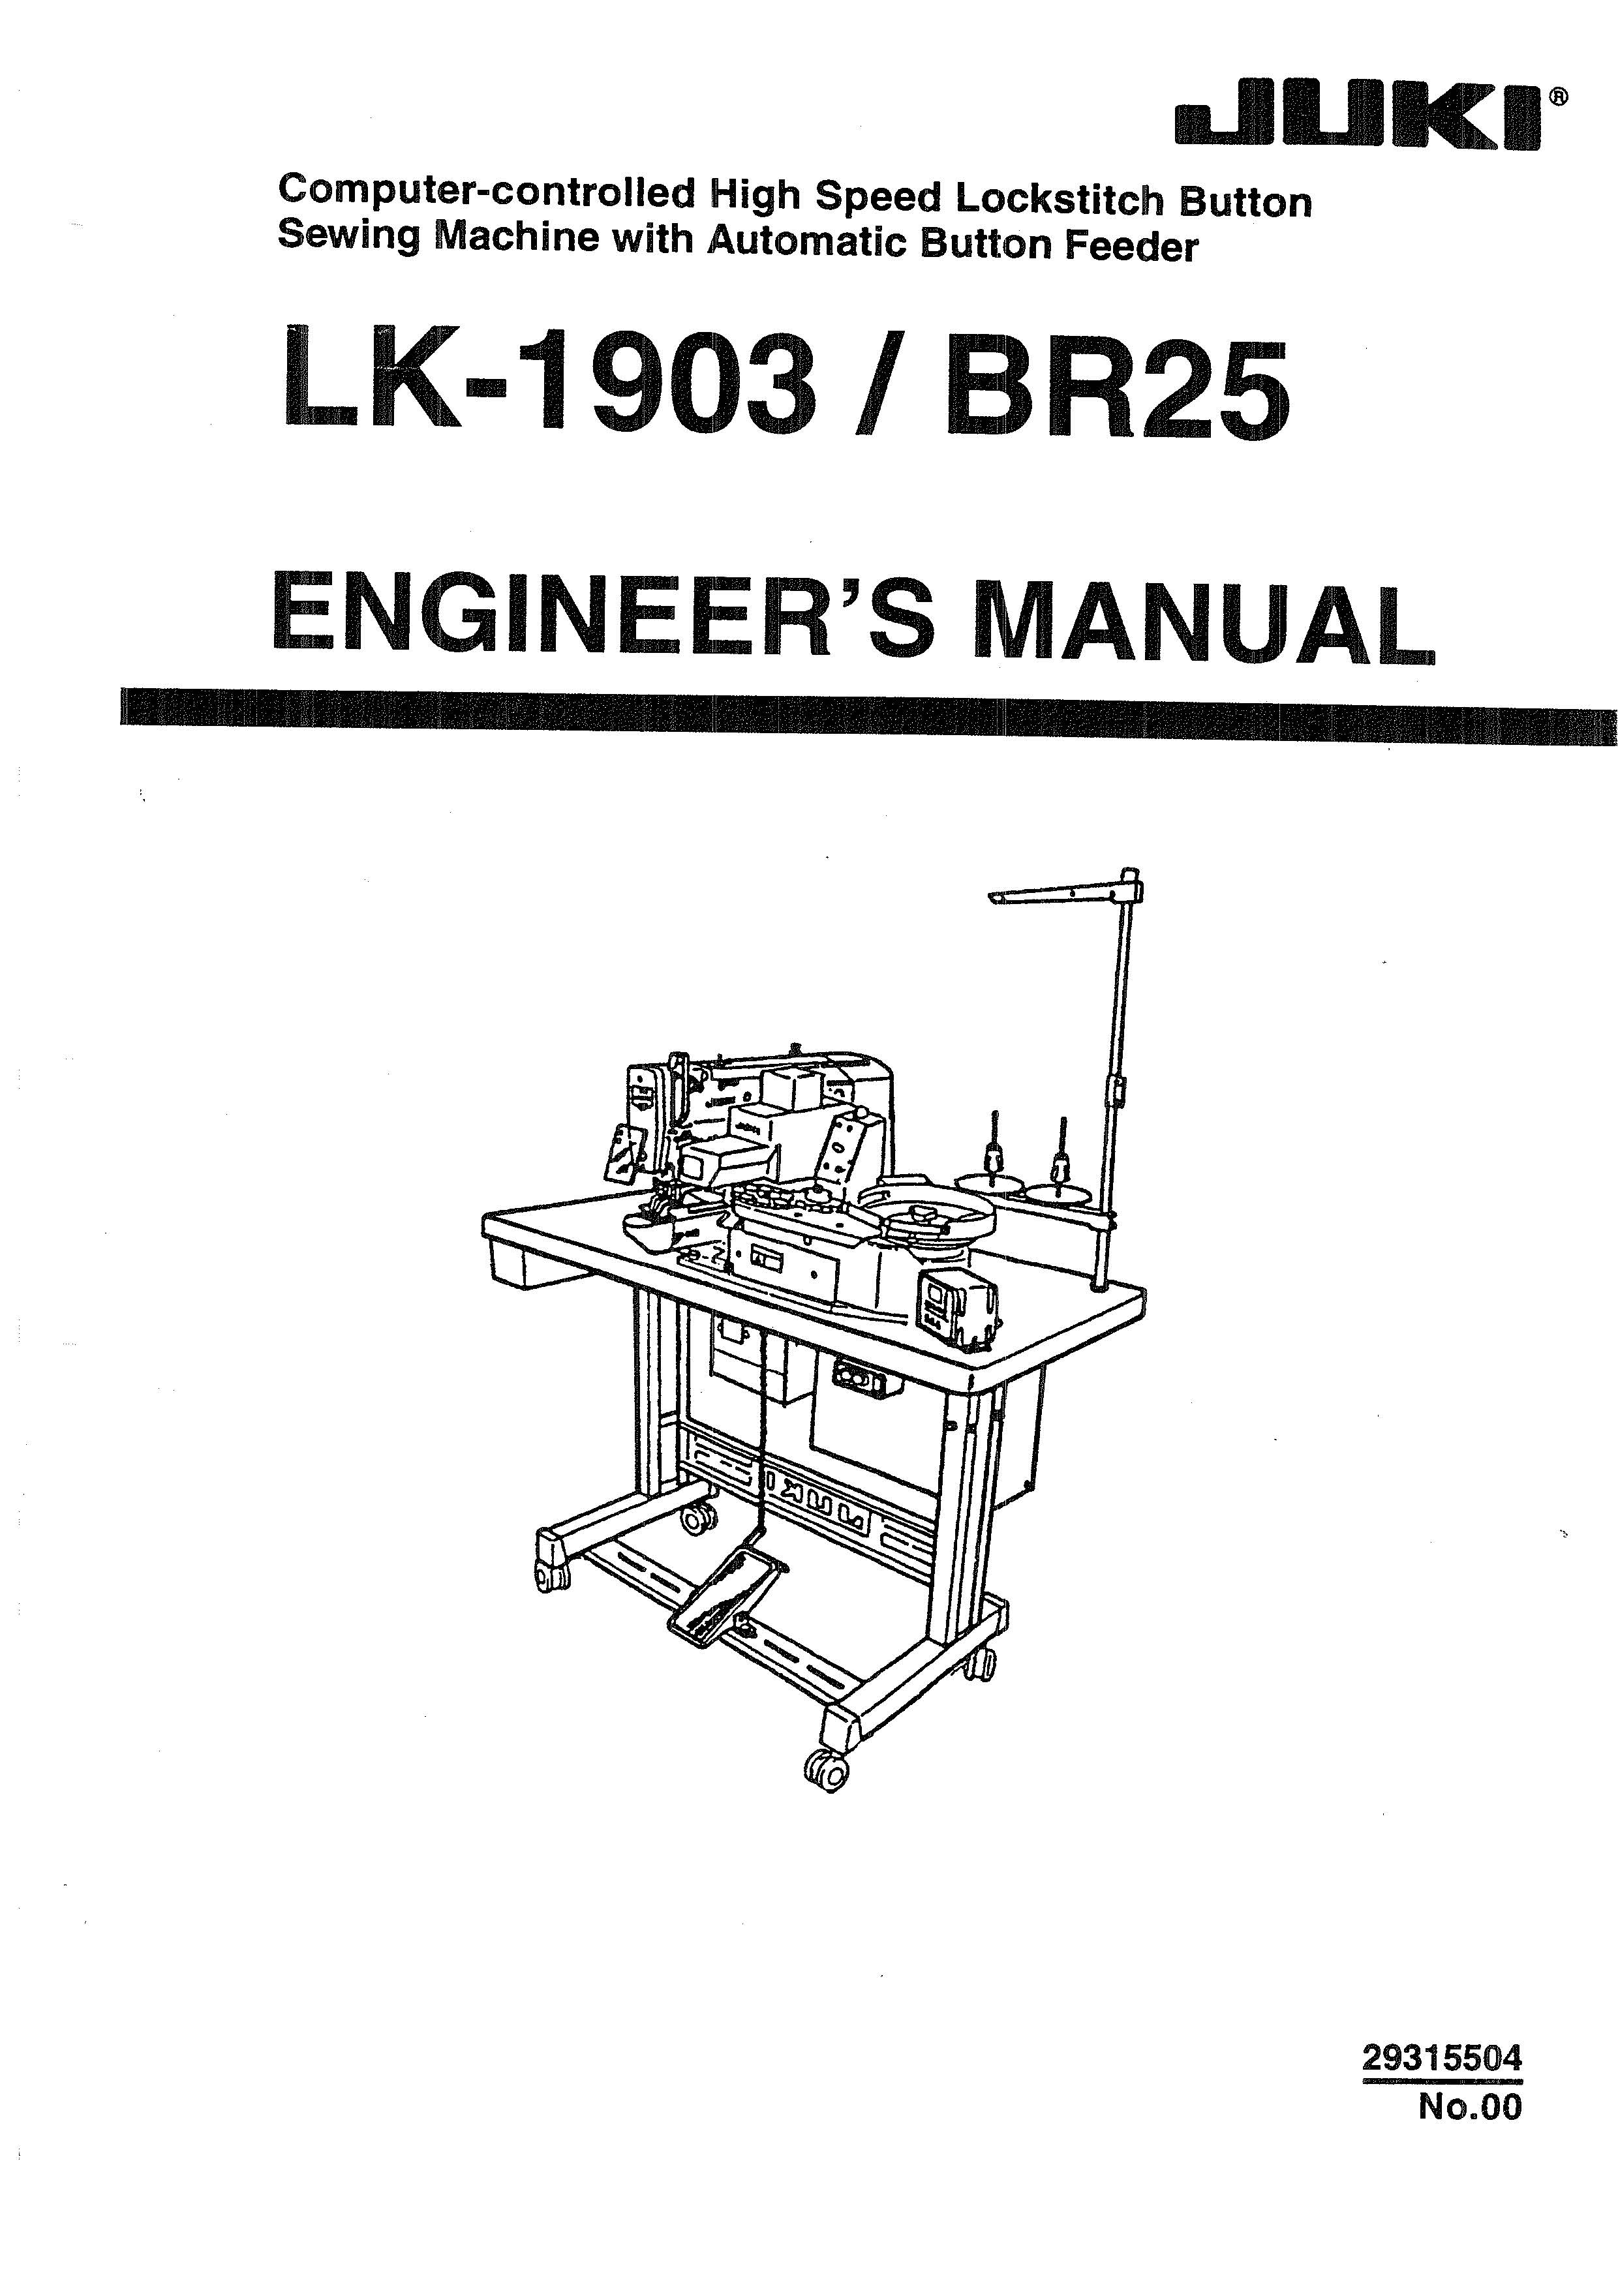 Service Manual LK-1903, BR25 Sewing Machine engineer manual